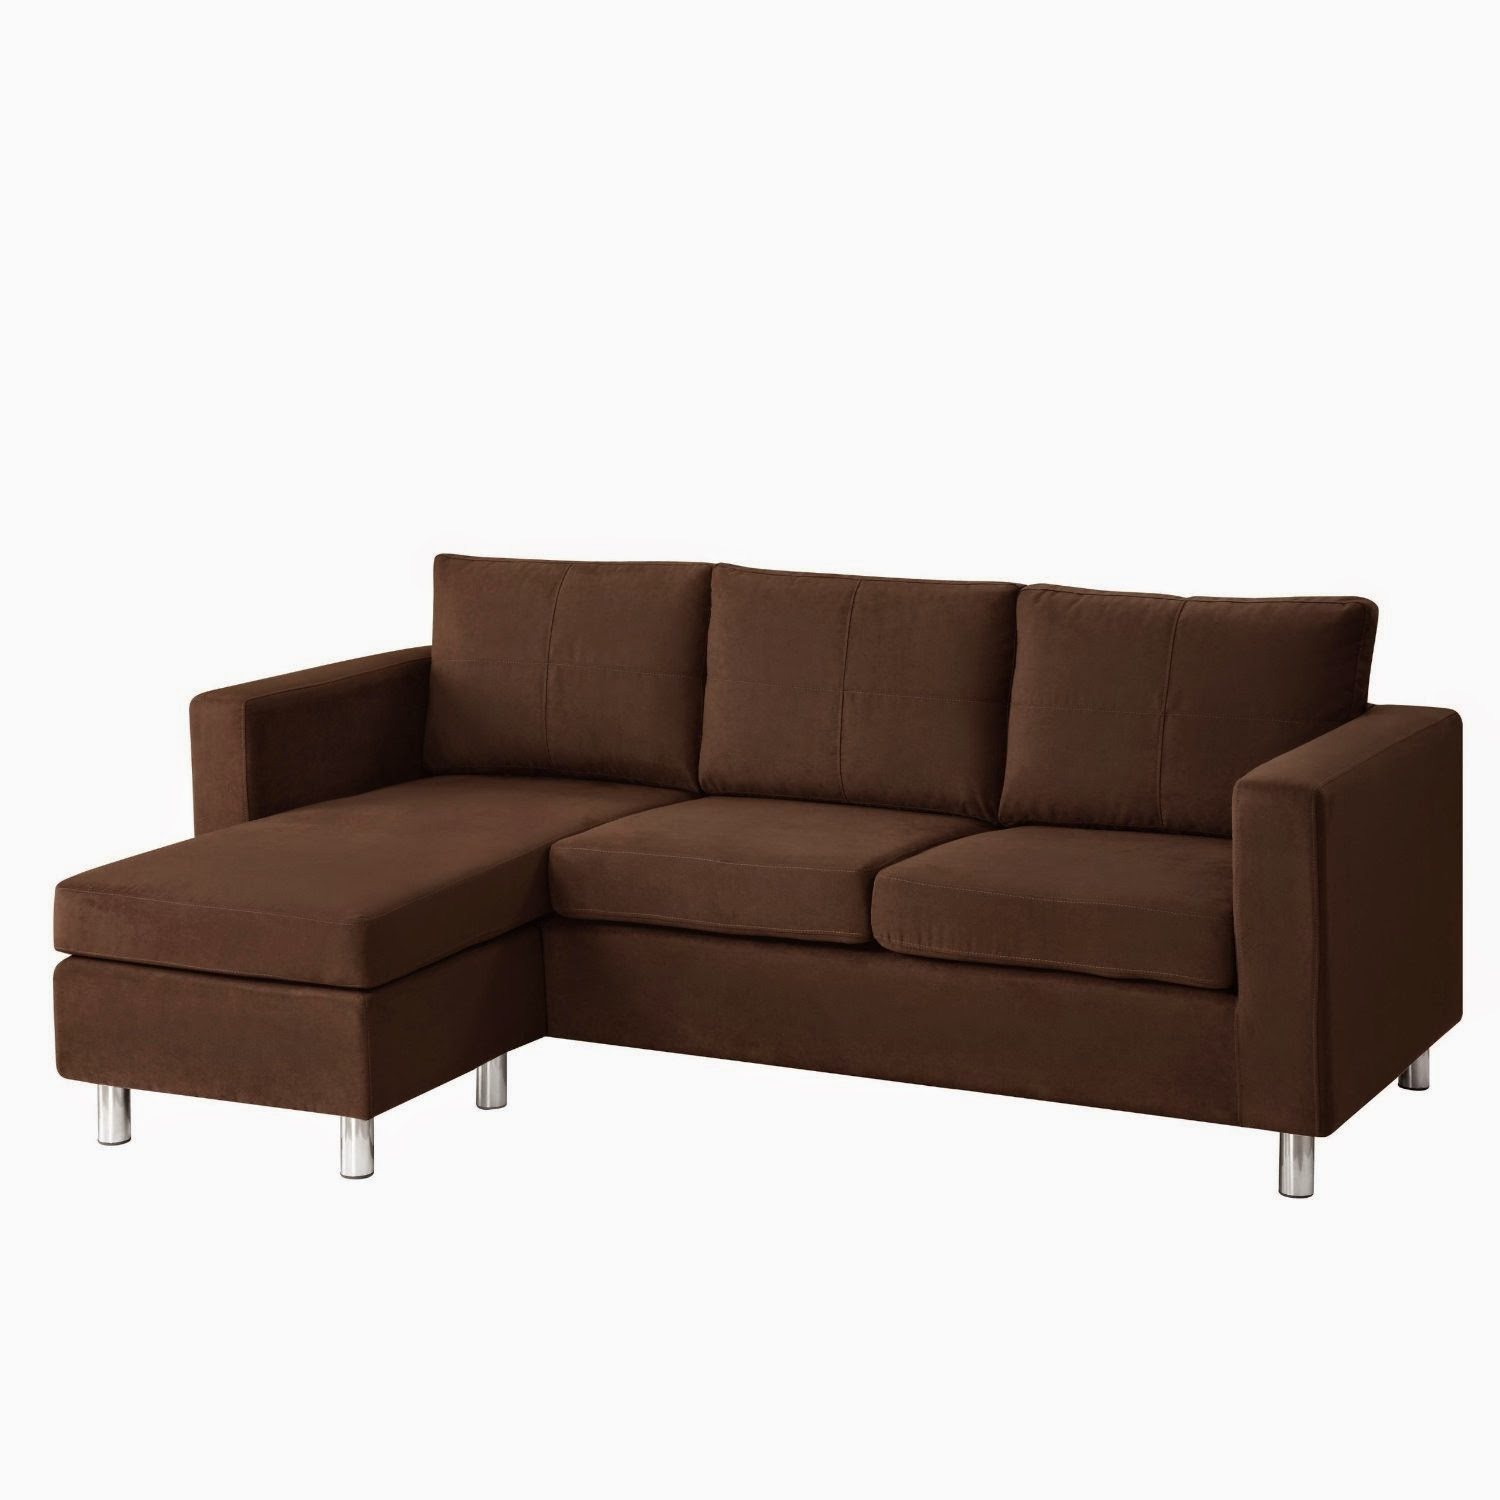 Cheap sofa cheap sectional sofa for Affordable chaise sofas